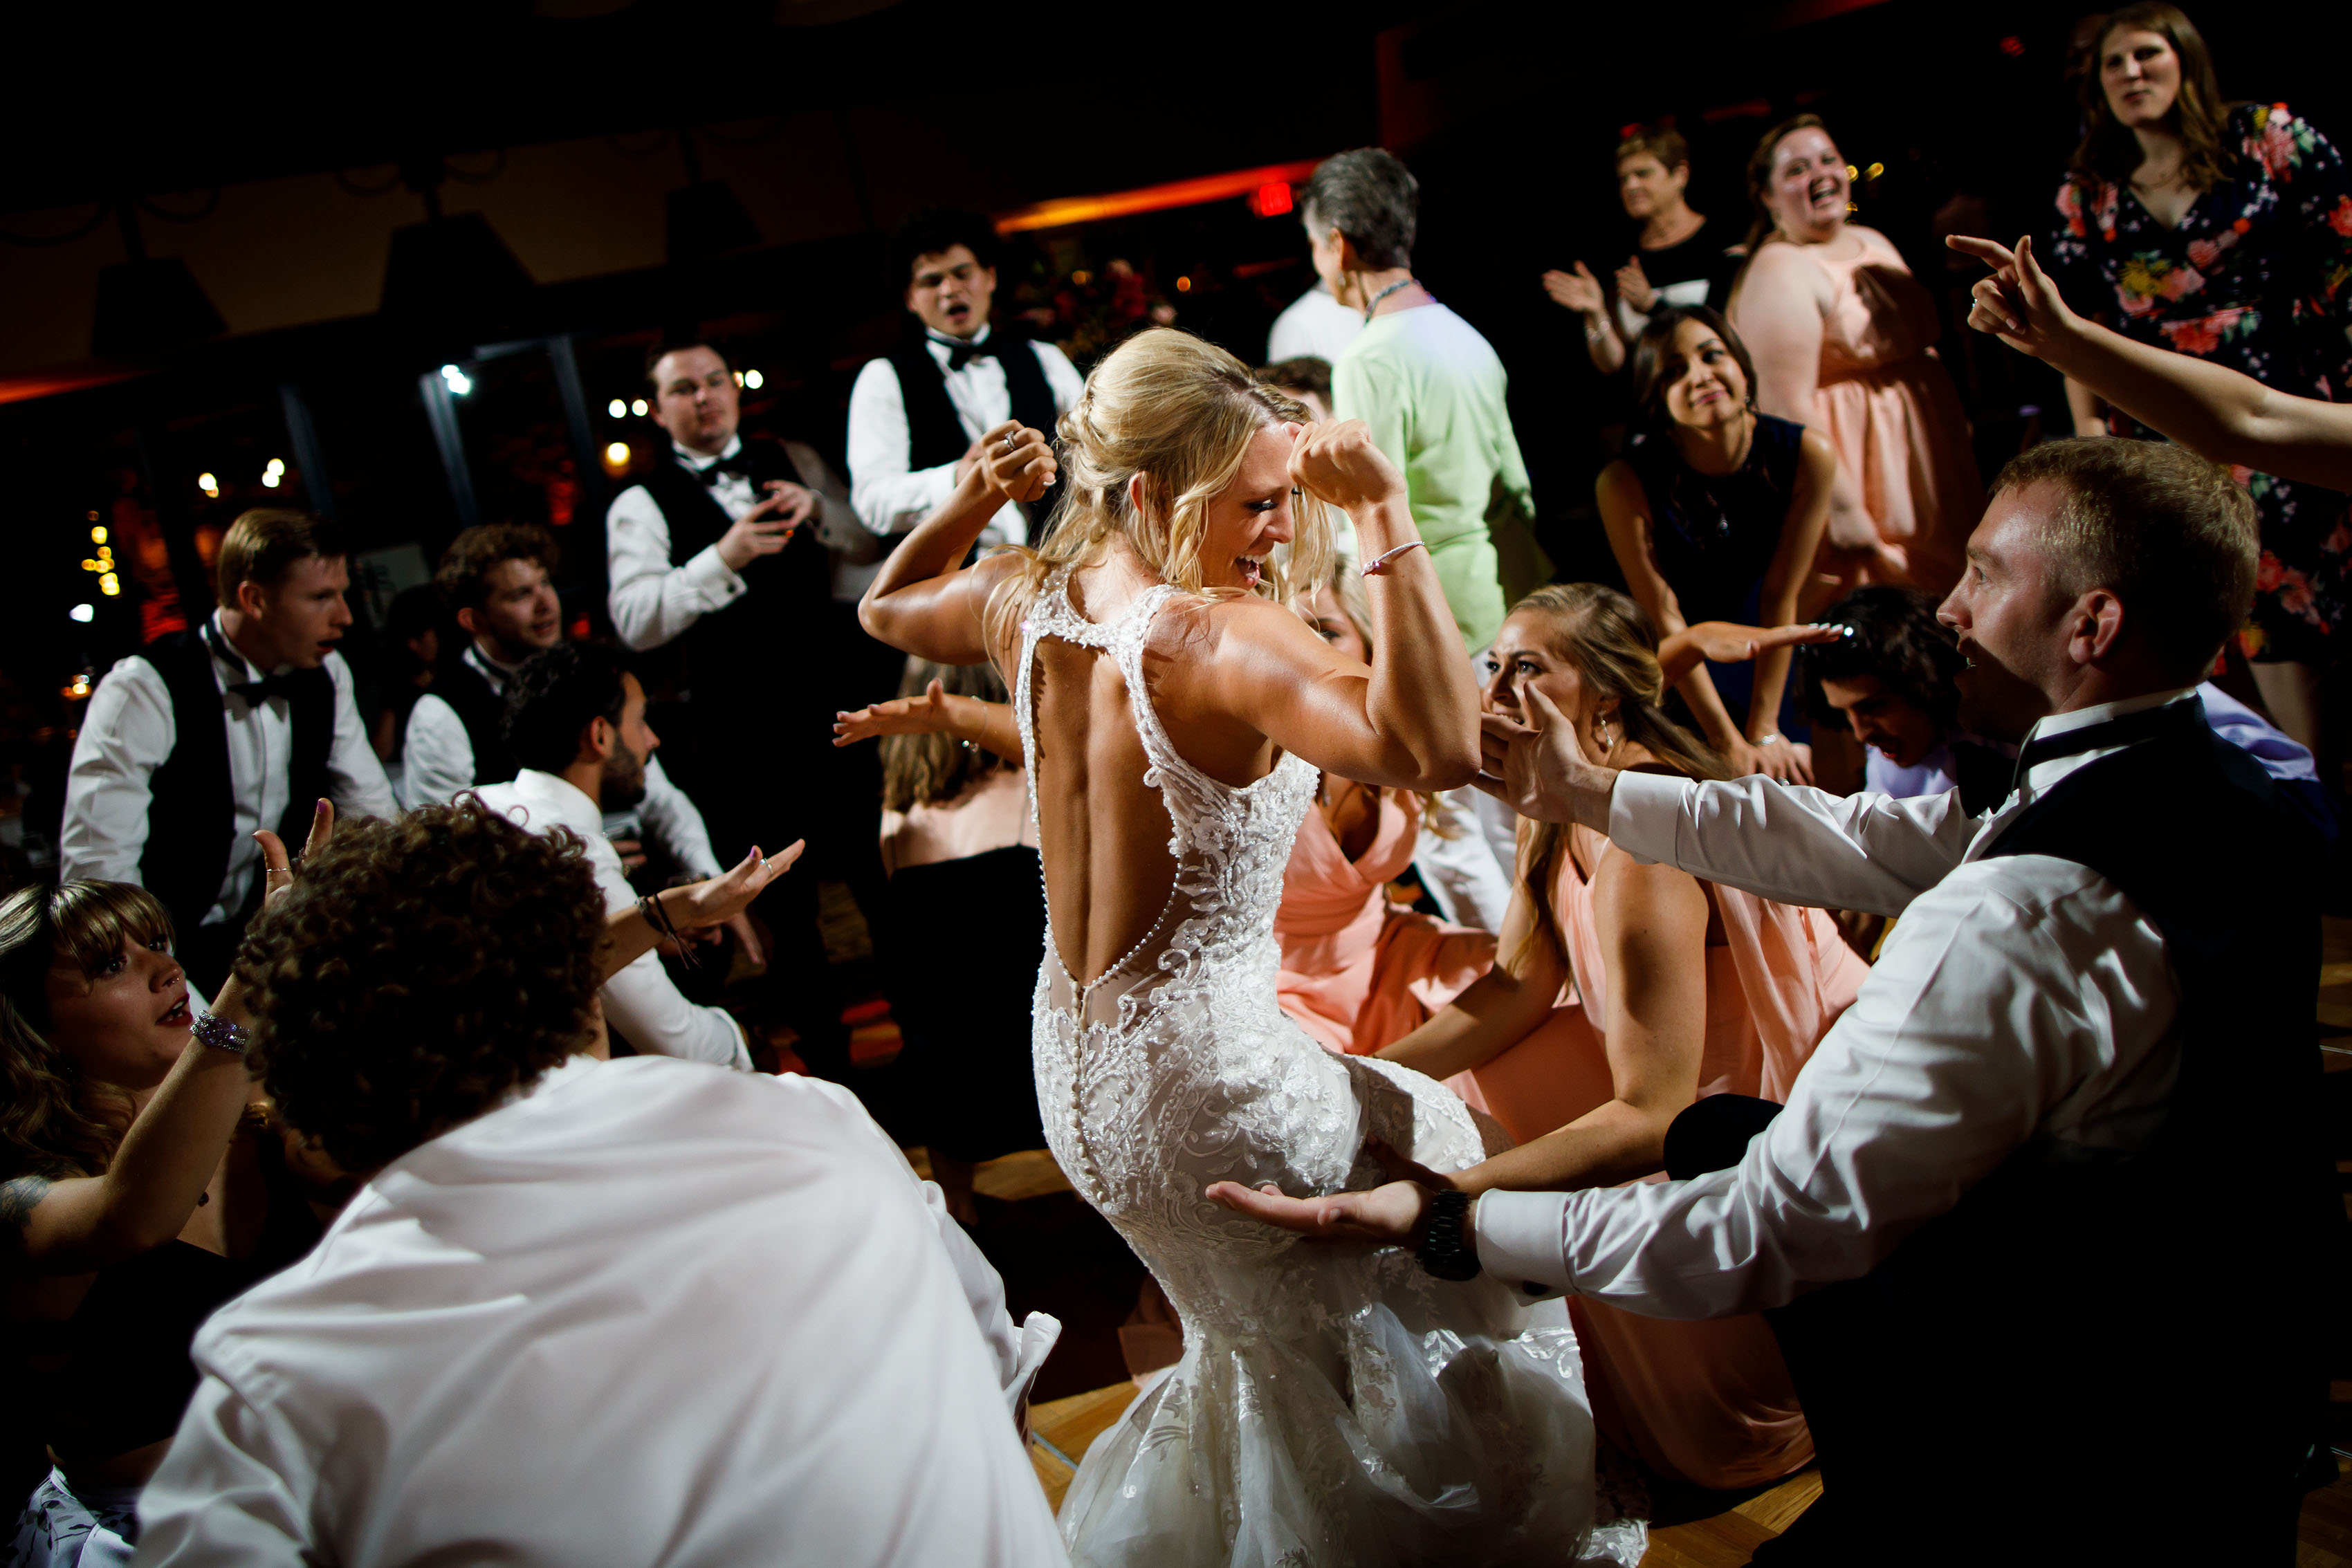 The bride dances with guests at Cheyenne Lodge